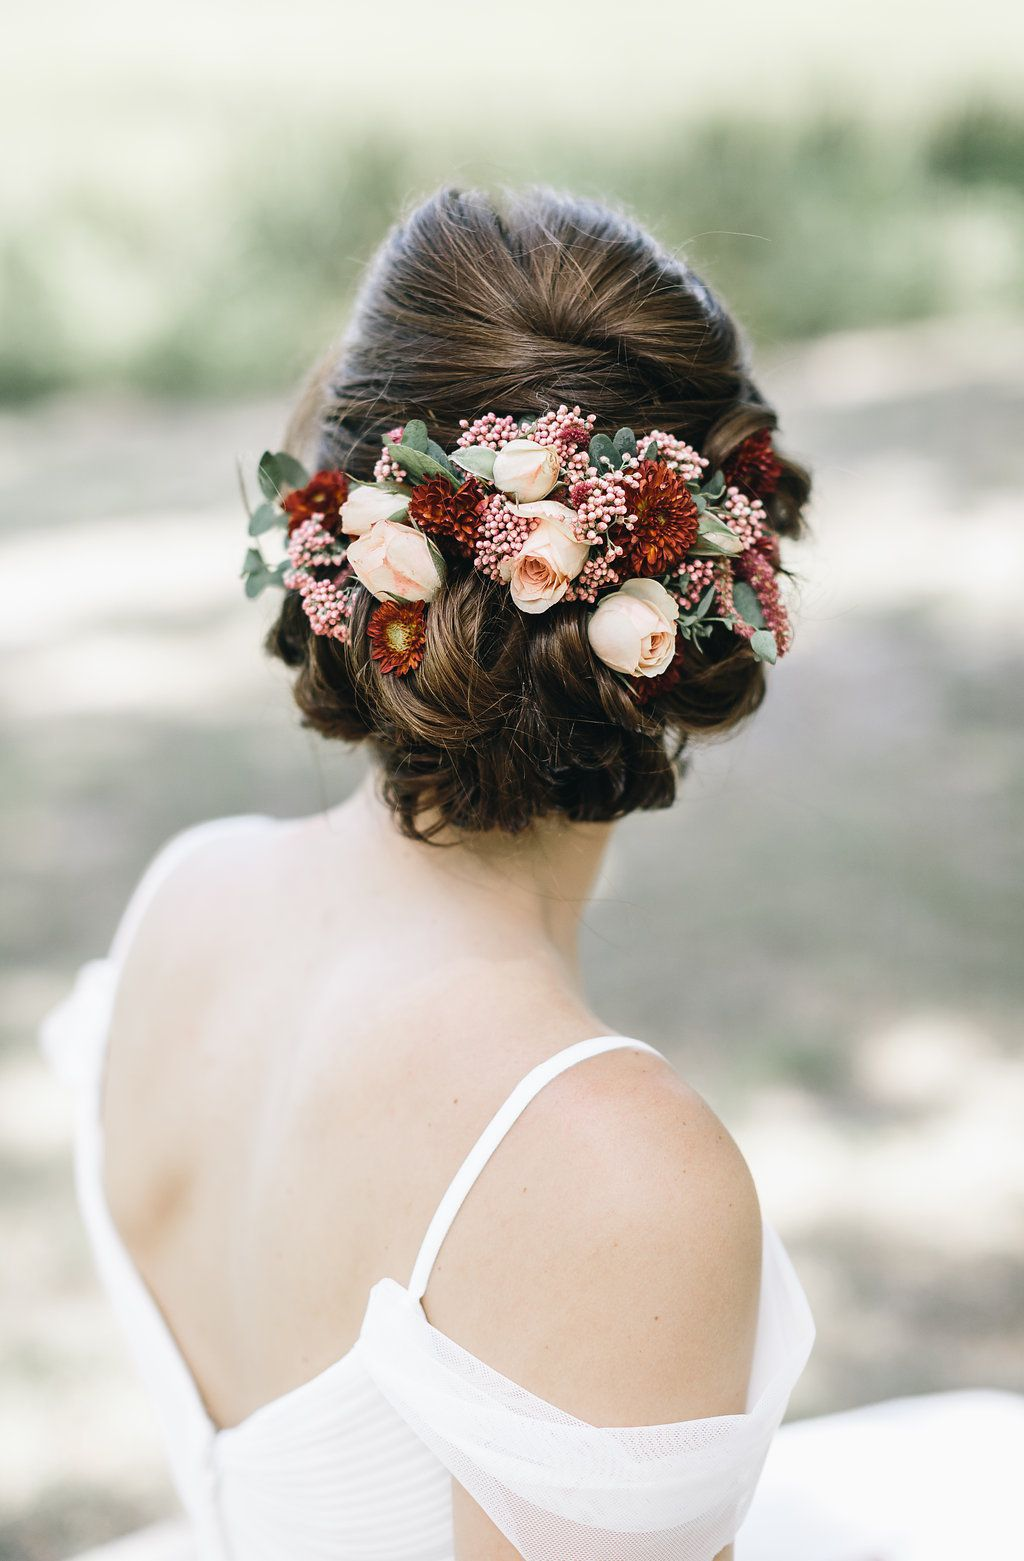 Updo with flowers